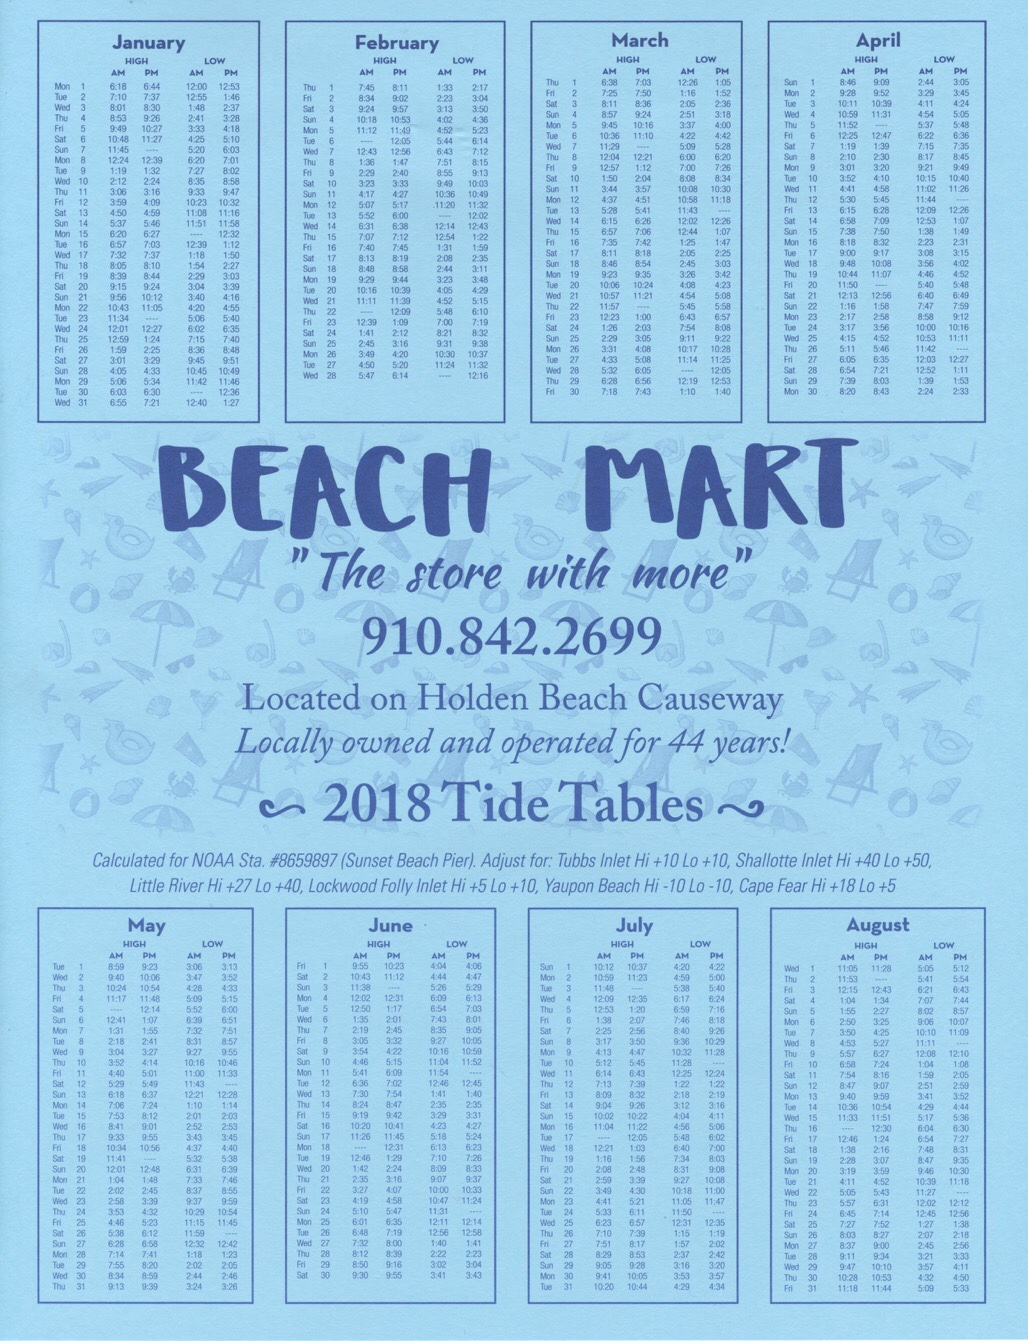 Nsw tide charts images chart design ideas holden beach nc tide chart gallery chart design ideas holden beach tide charts beach mart geenschuldenfo geenschuldenfo Images